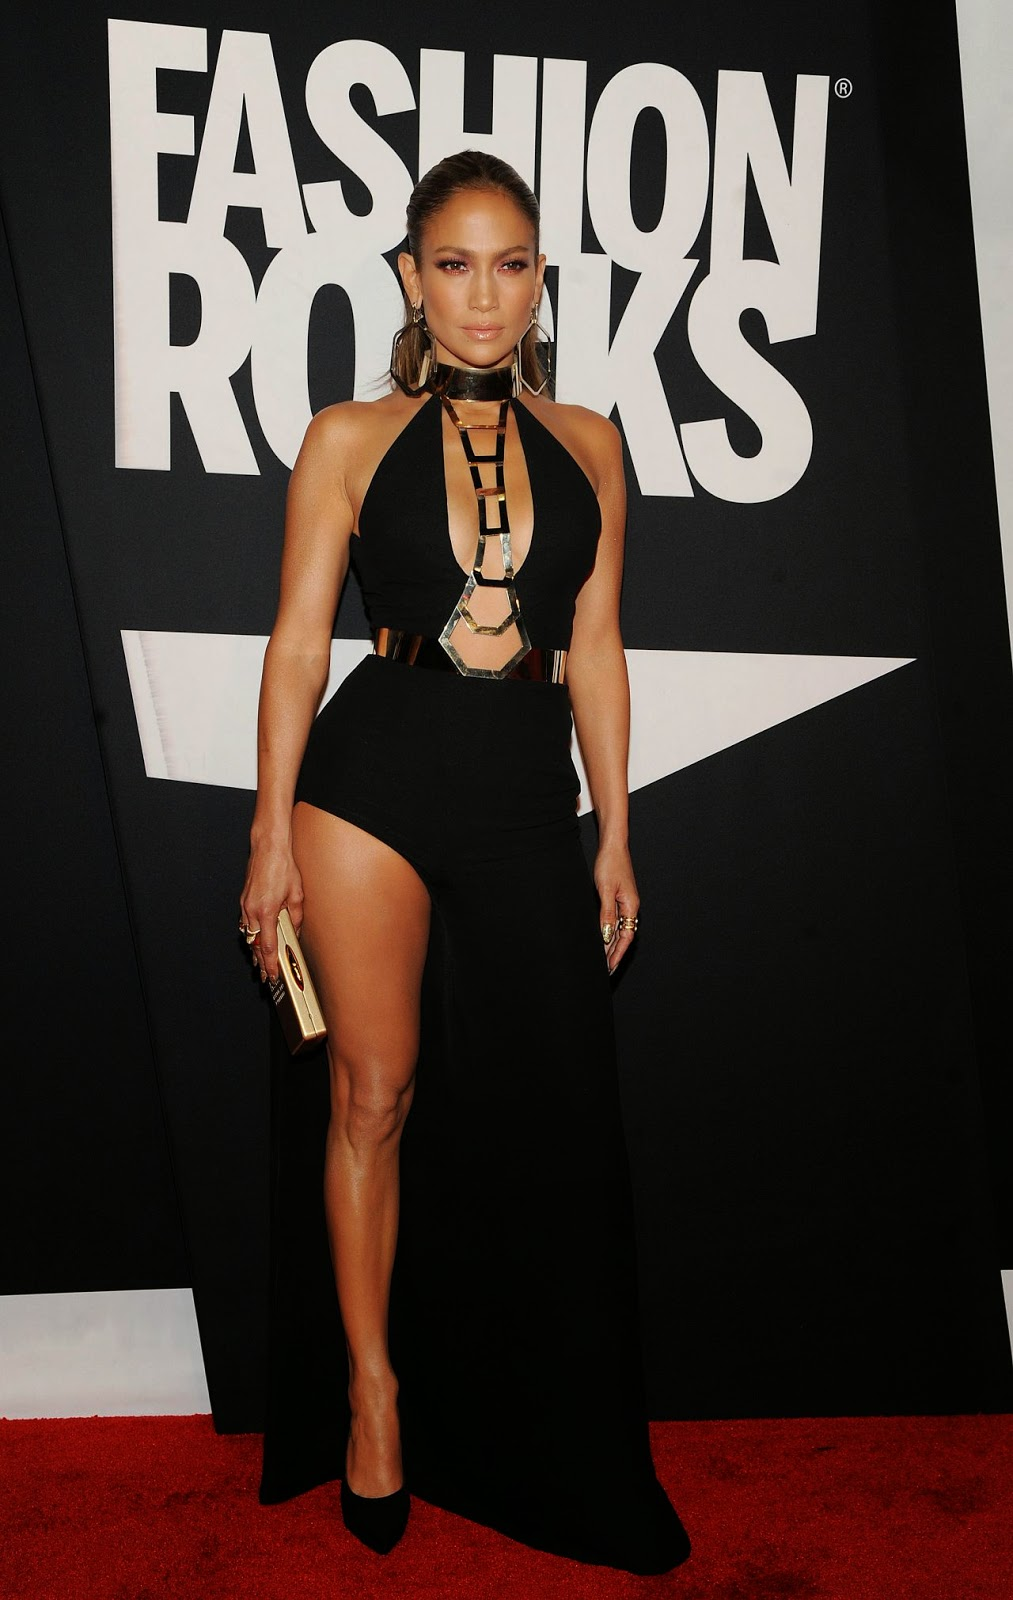 Jennifer Lopez is sexy in Atelier Versace at the 2014 Fashion Rocks